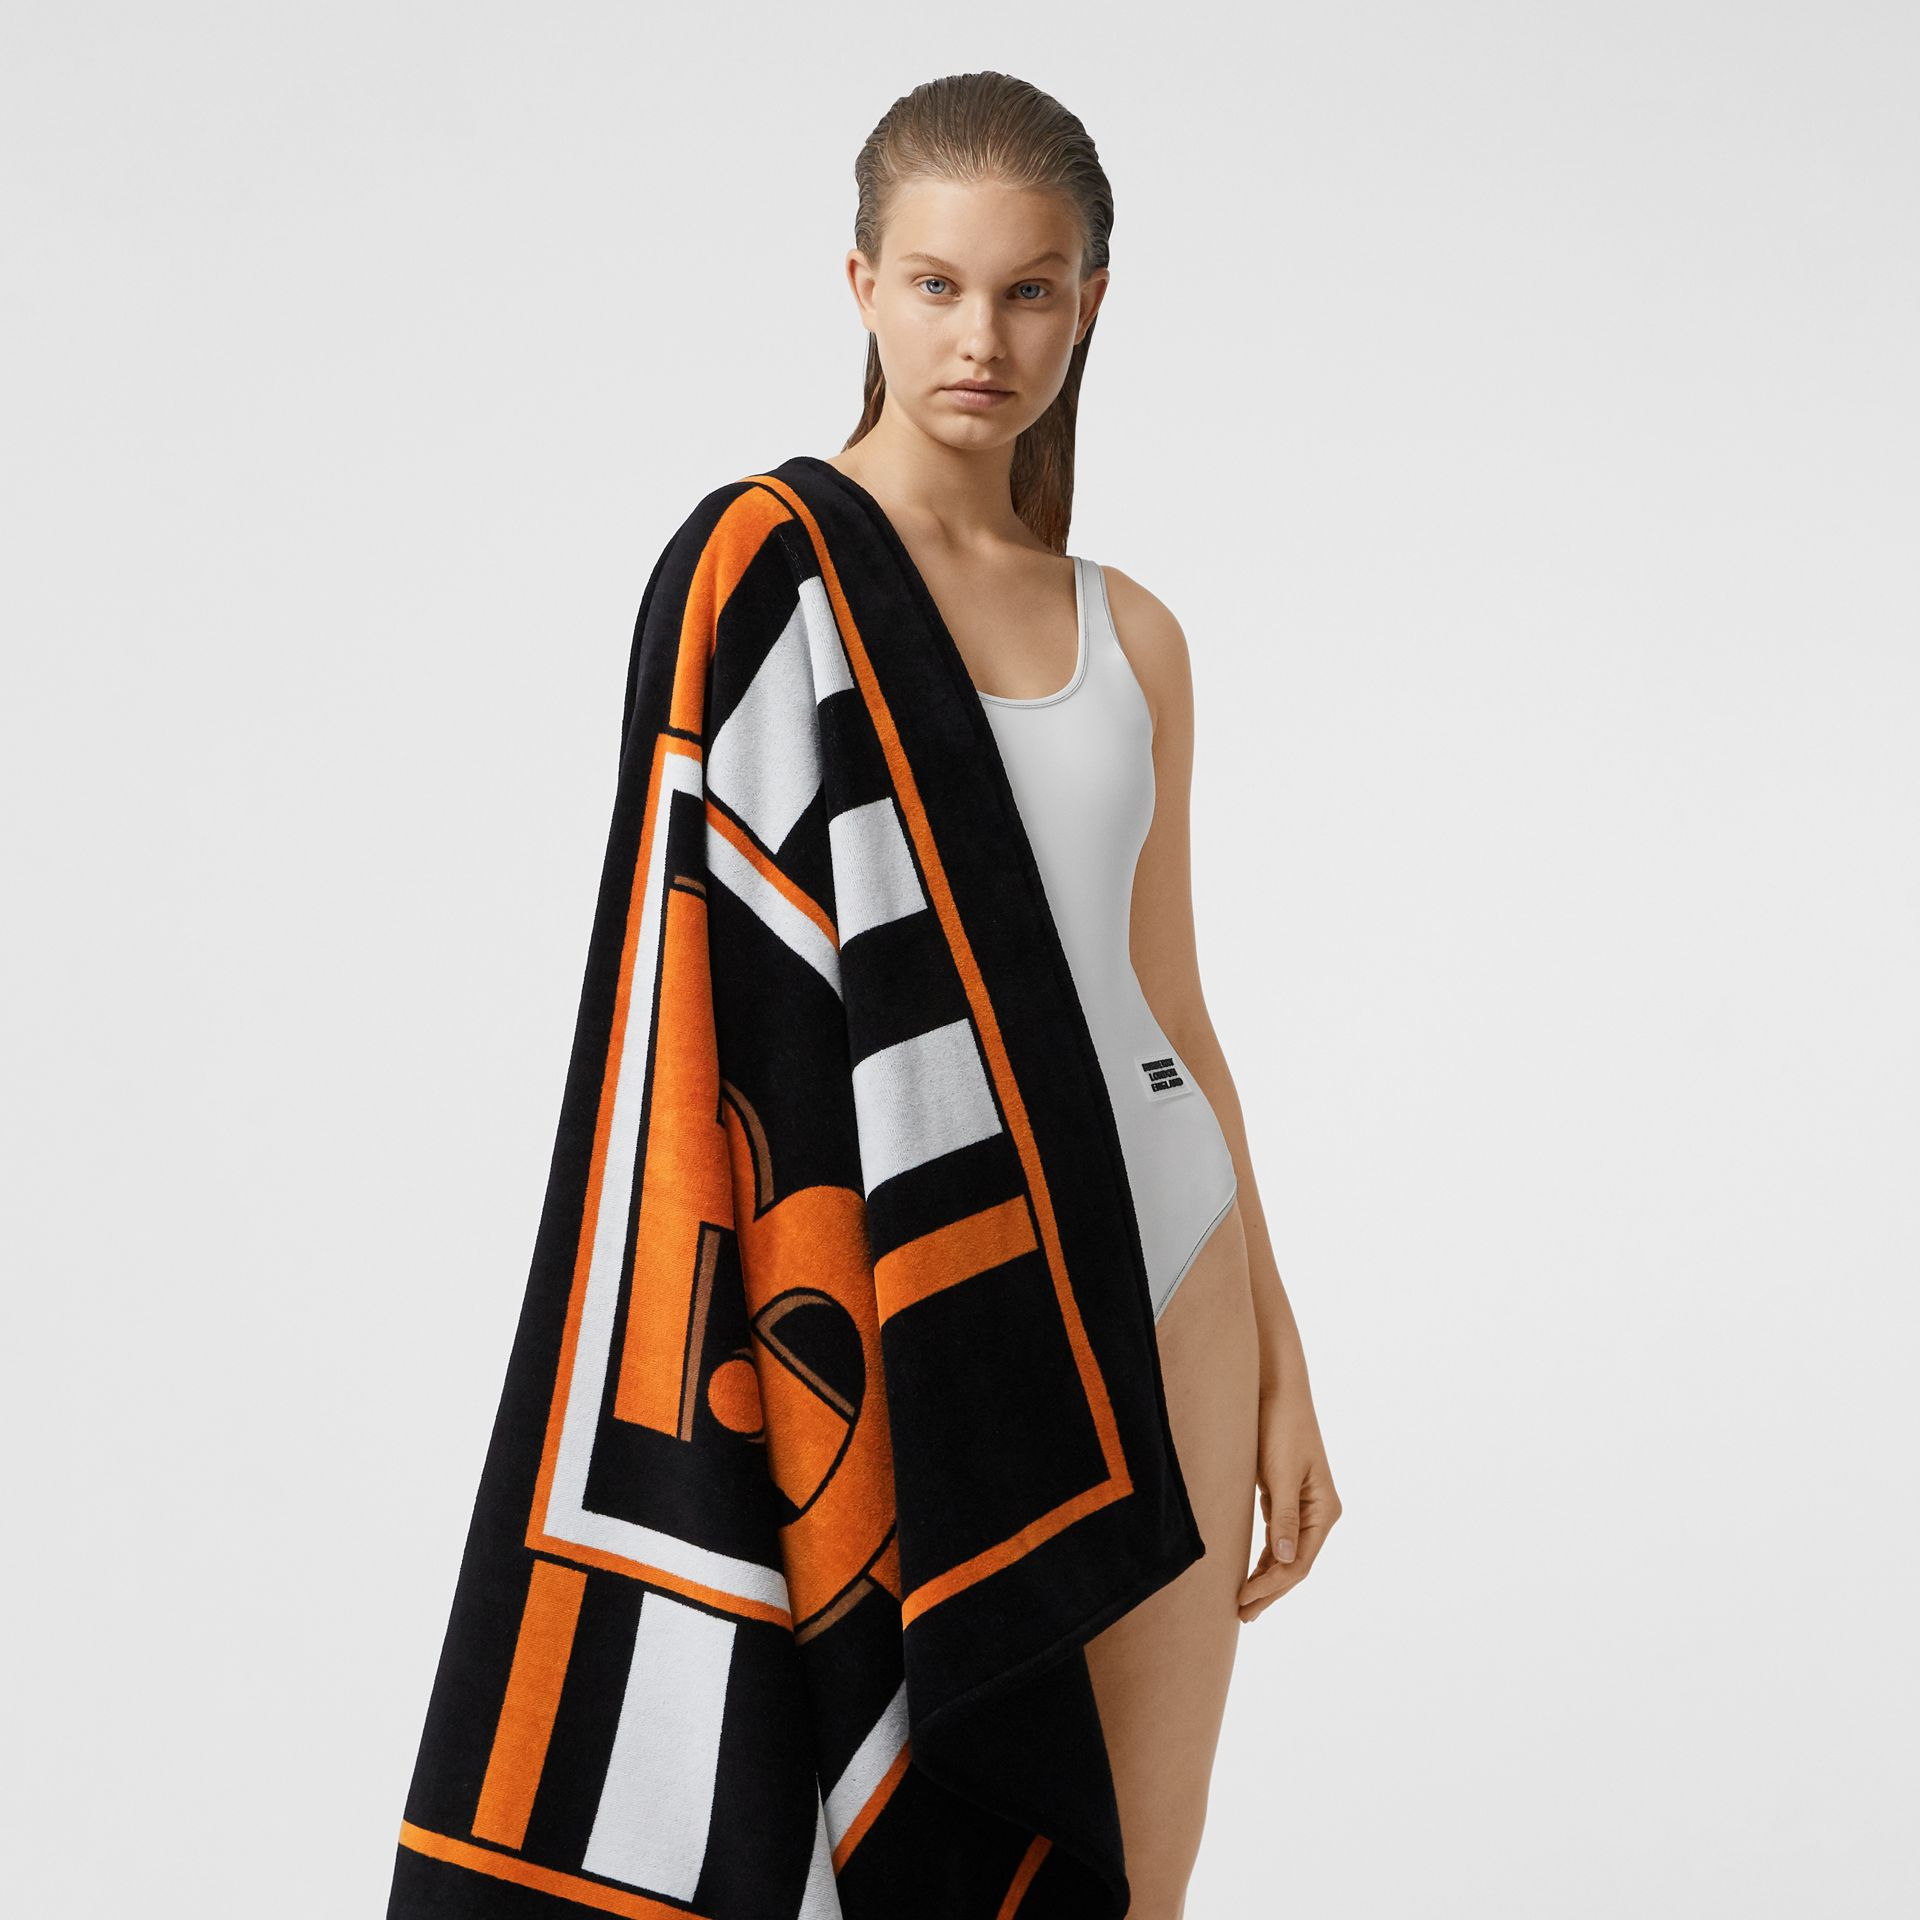 Monogram and Icon Stripe Print Cotton Towel in Black | Burberry United States - gallery image 2